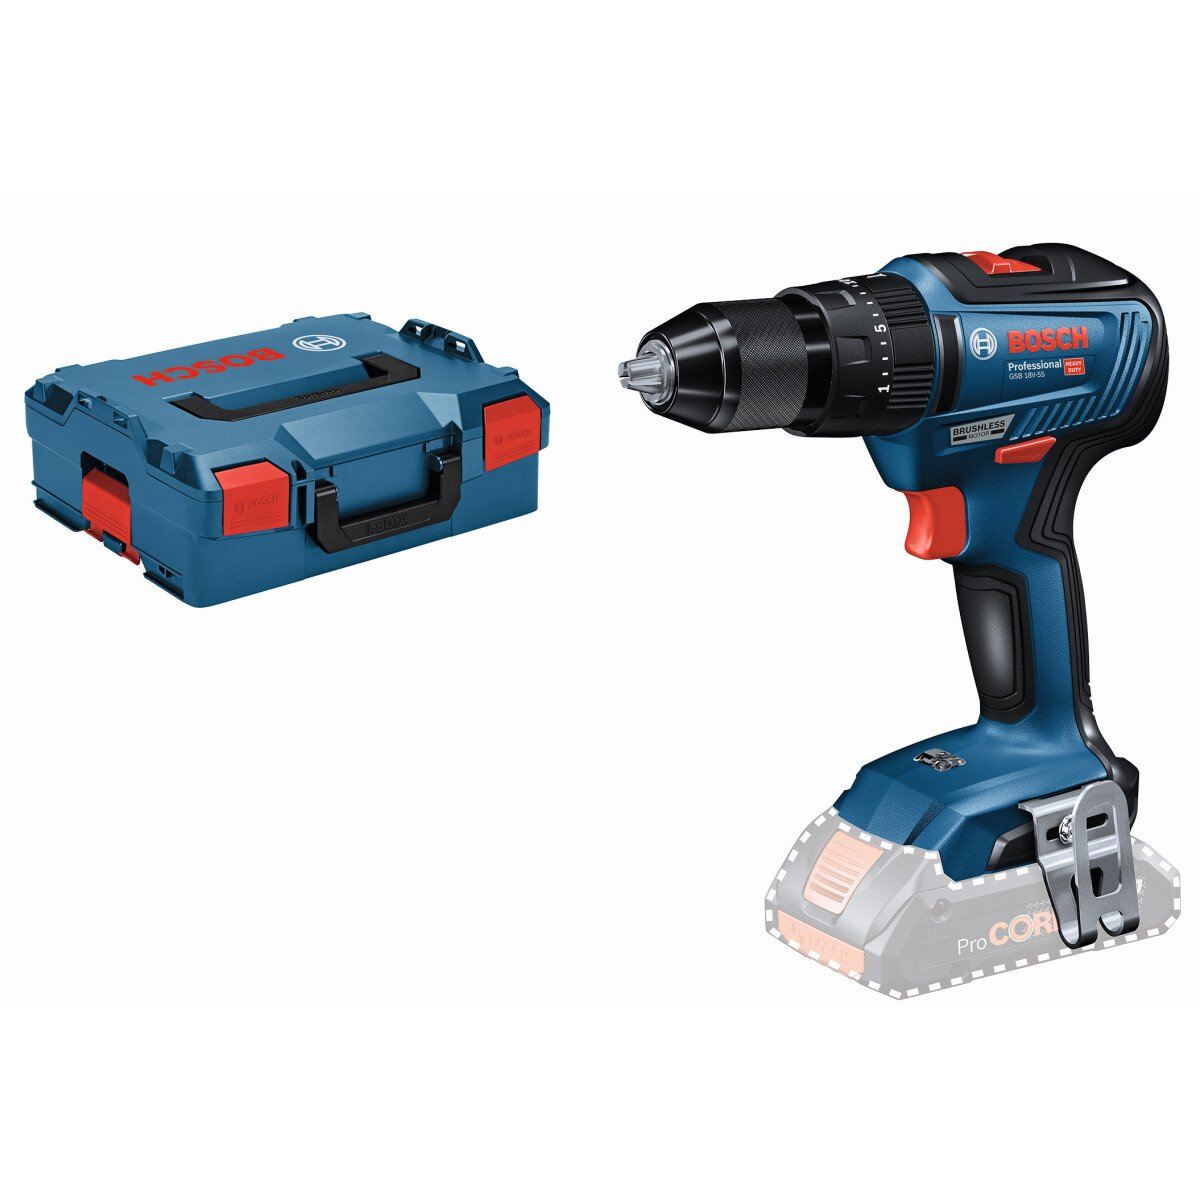 Bosch GSB 18V-55 NCG 18v Body Only 2 Speed Connection Ready Combi Drill with Metal Chuck in L-Boxx